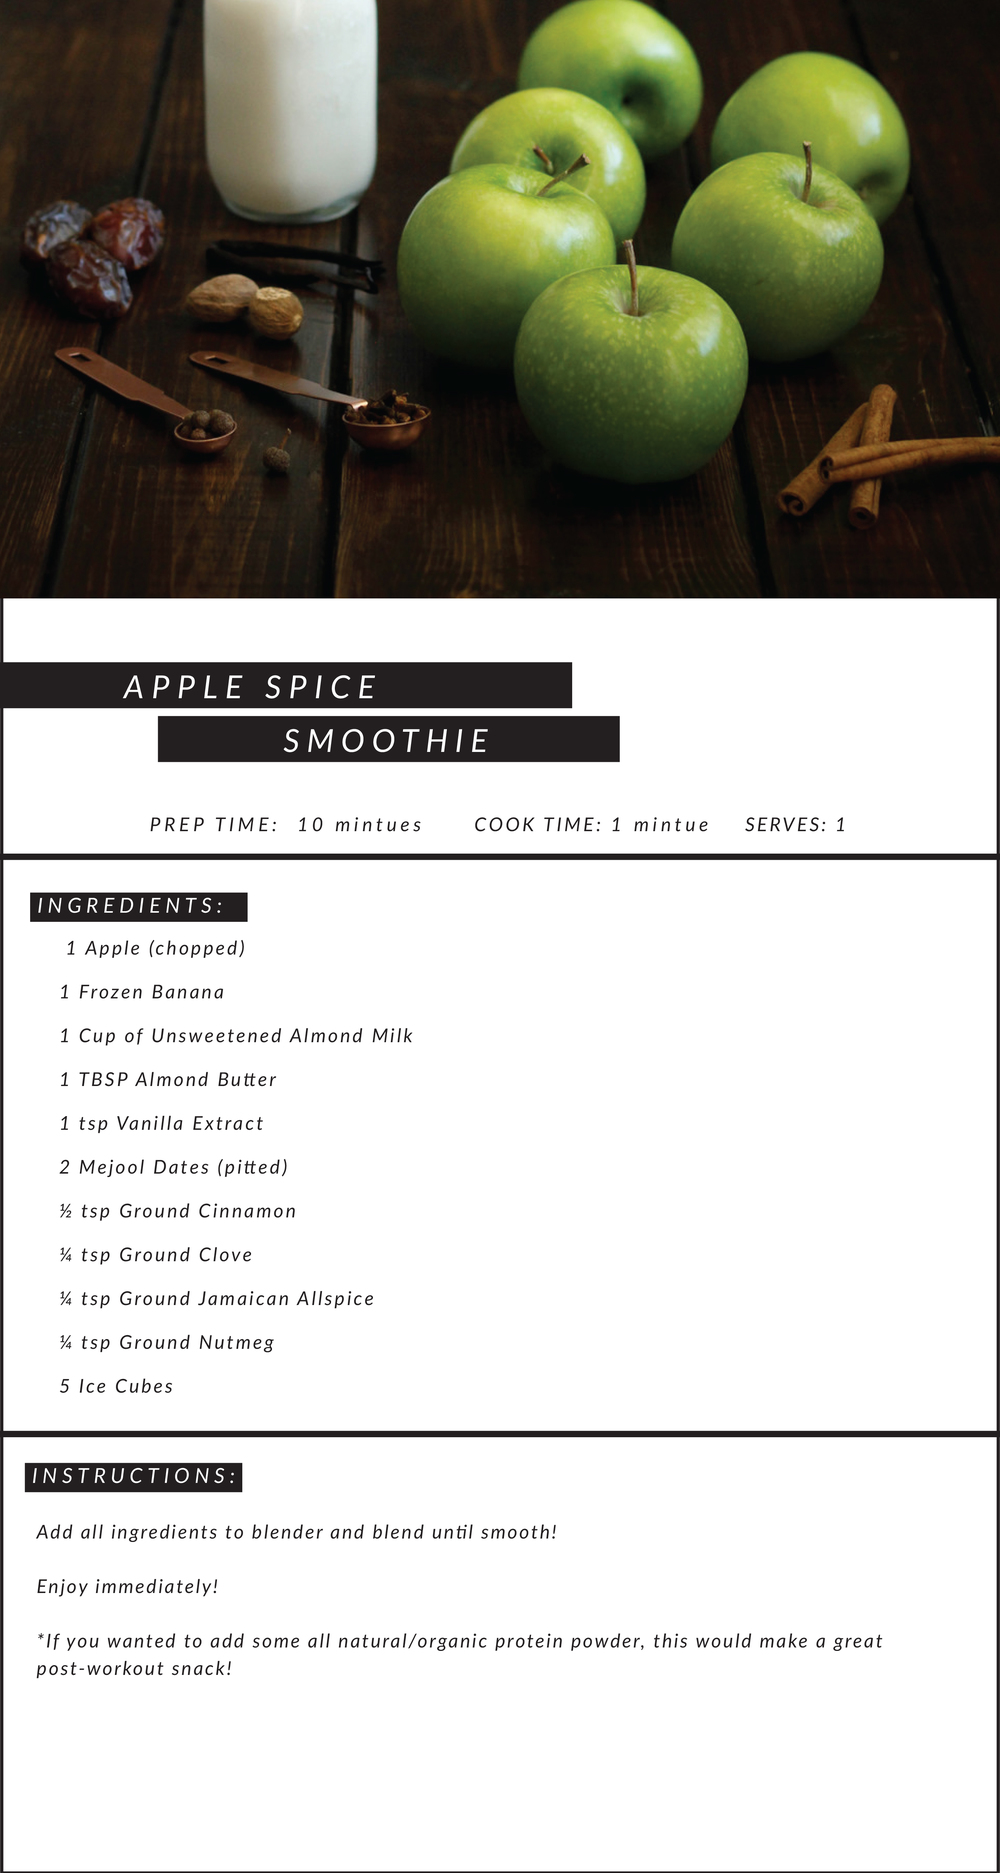 Apple Spice Smoothie Recipe